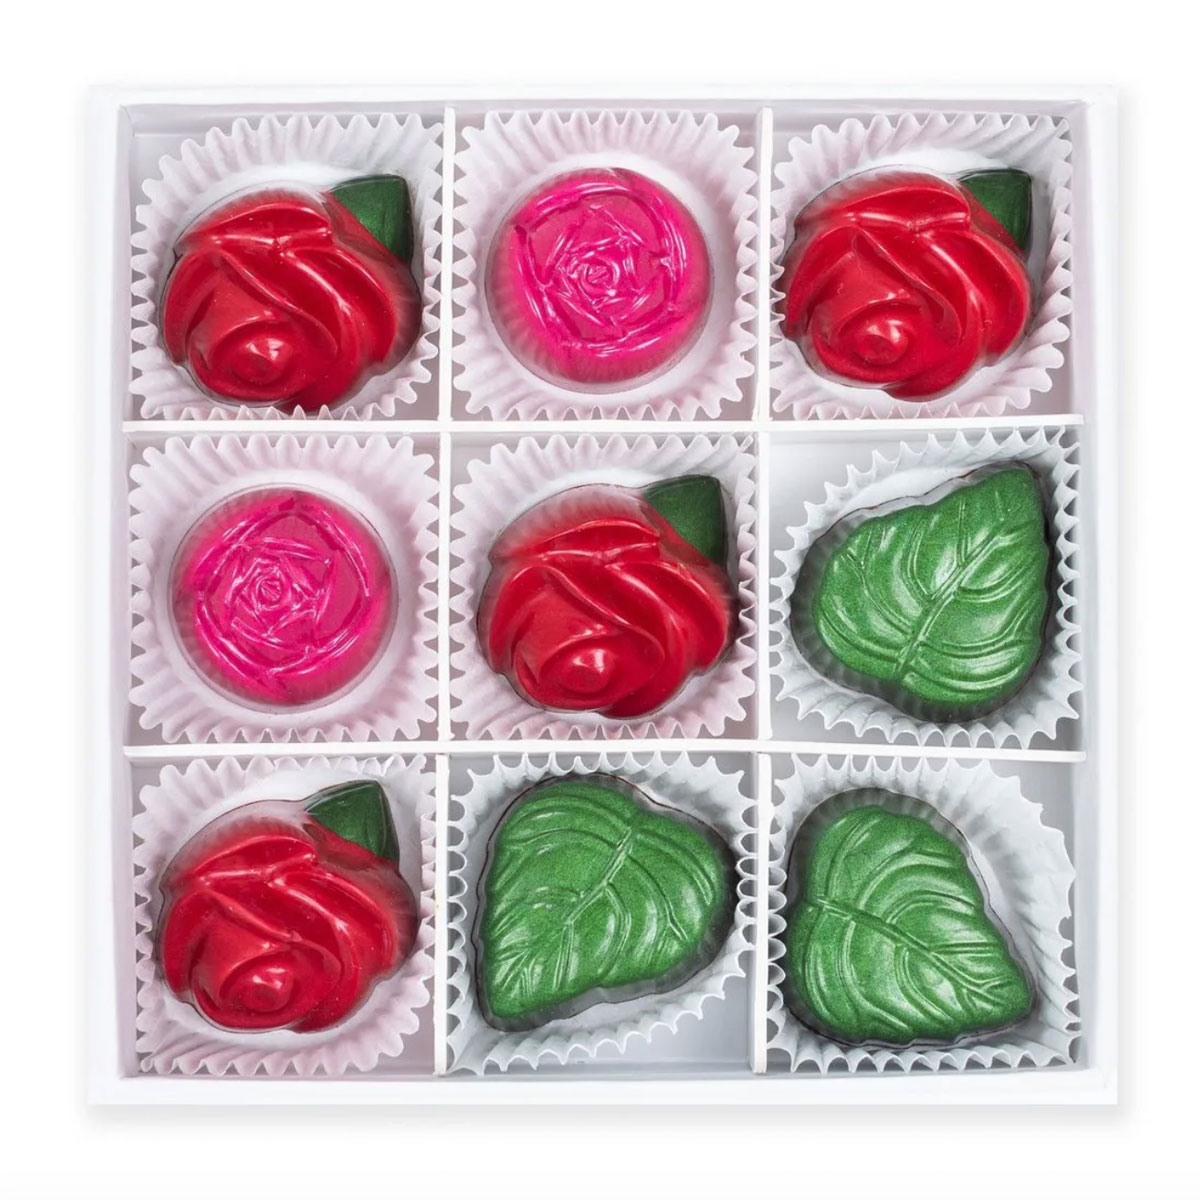 Maggie Louise is know for perfectly molded and quirky chocolate shapes, like these dark chocolate roses with peppermint mocha mint leaves.Rose Chocolates Set, $48 at maggielouise.com